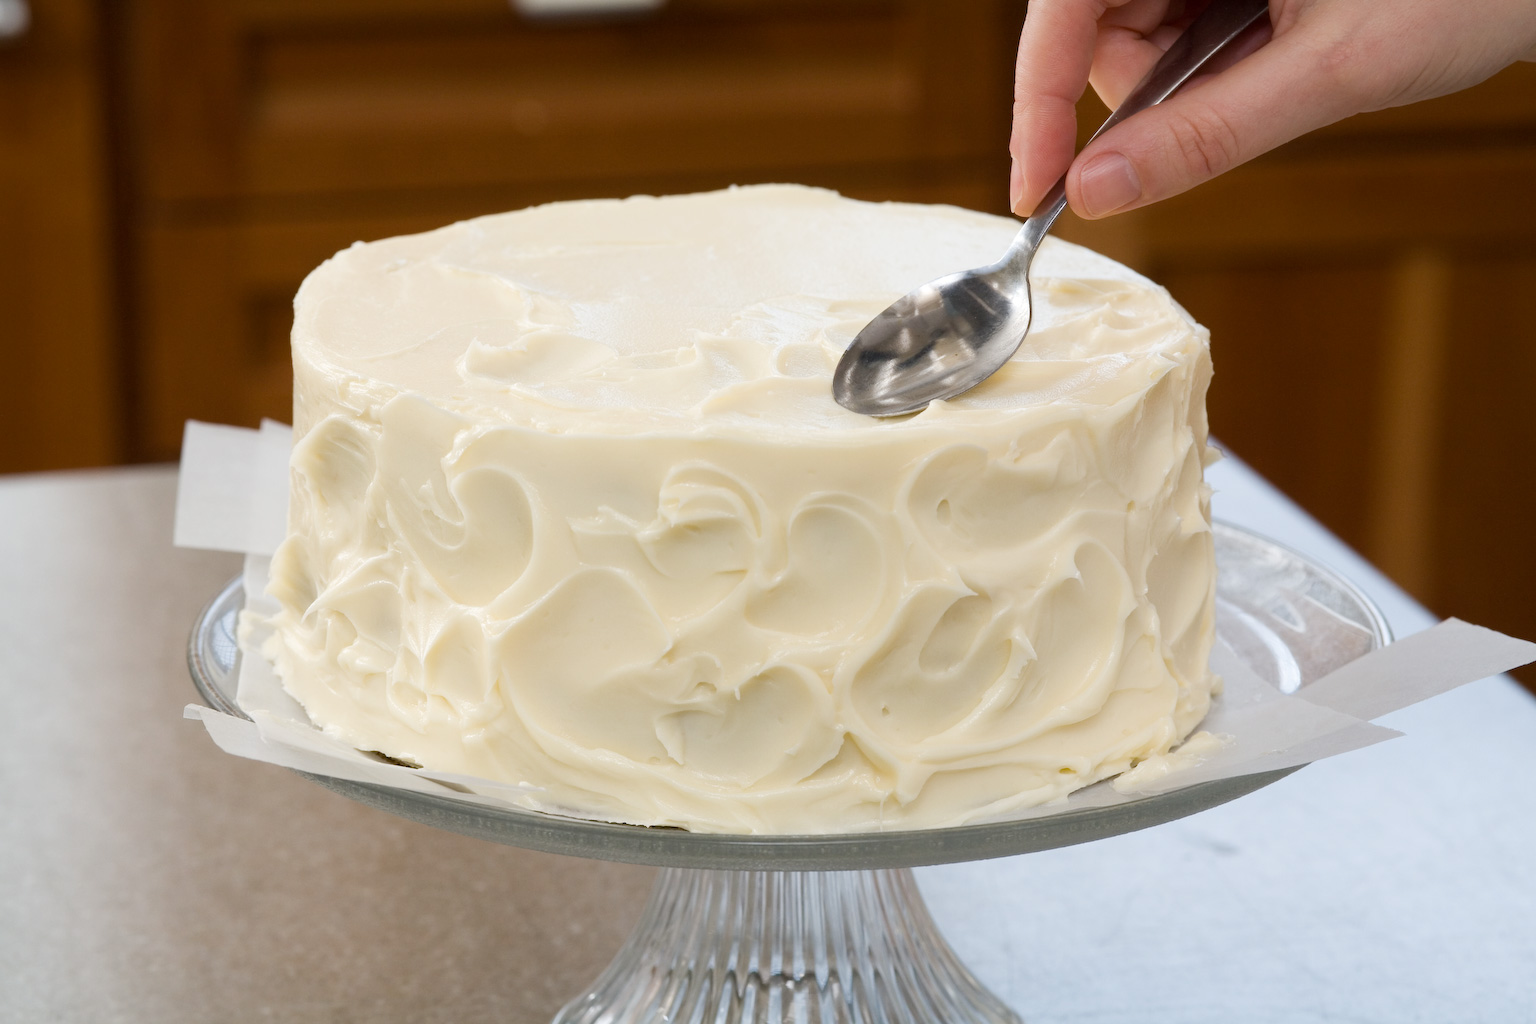 Blogs About Cake Decorating : How to make a cake from scratch HireRush Blog